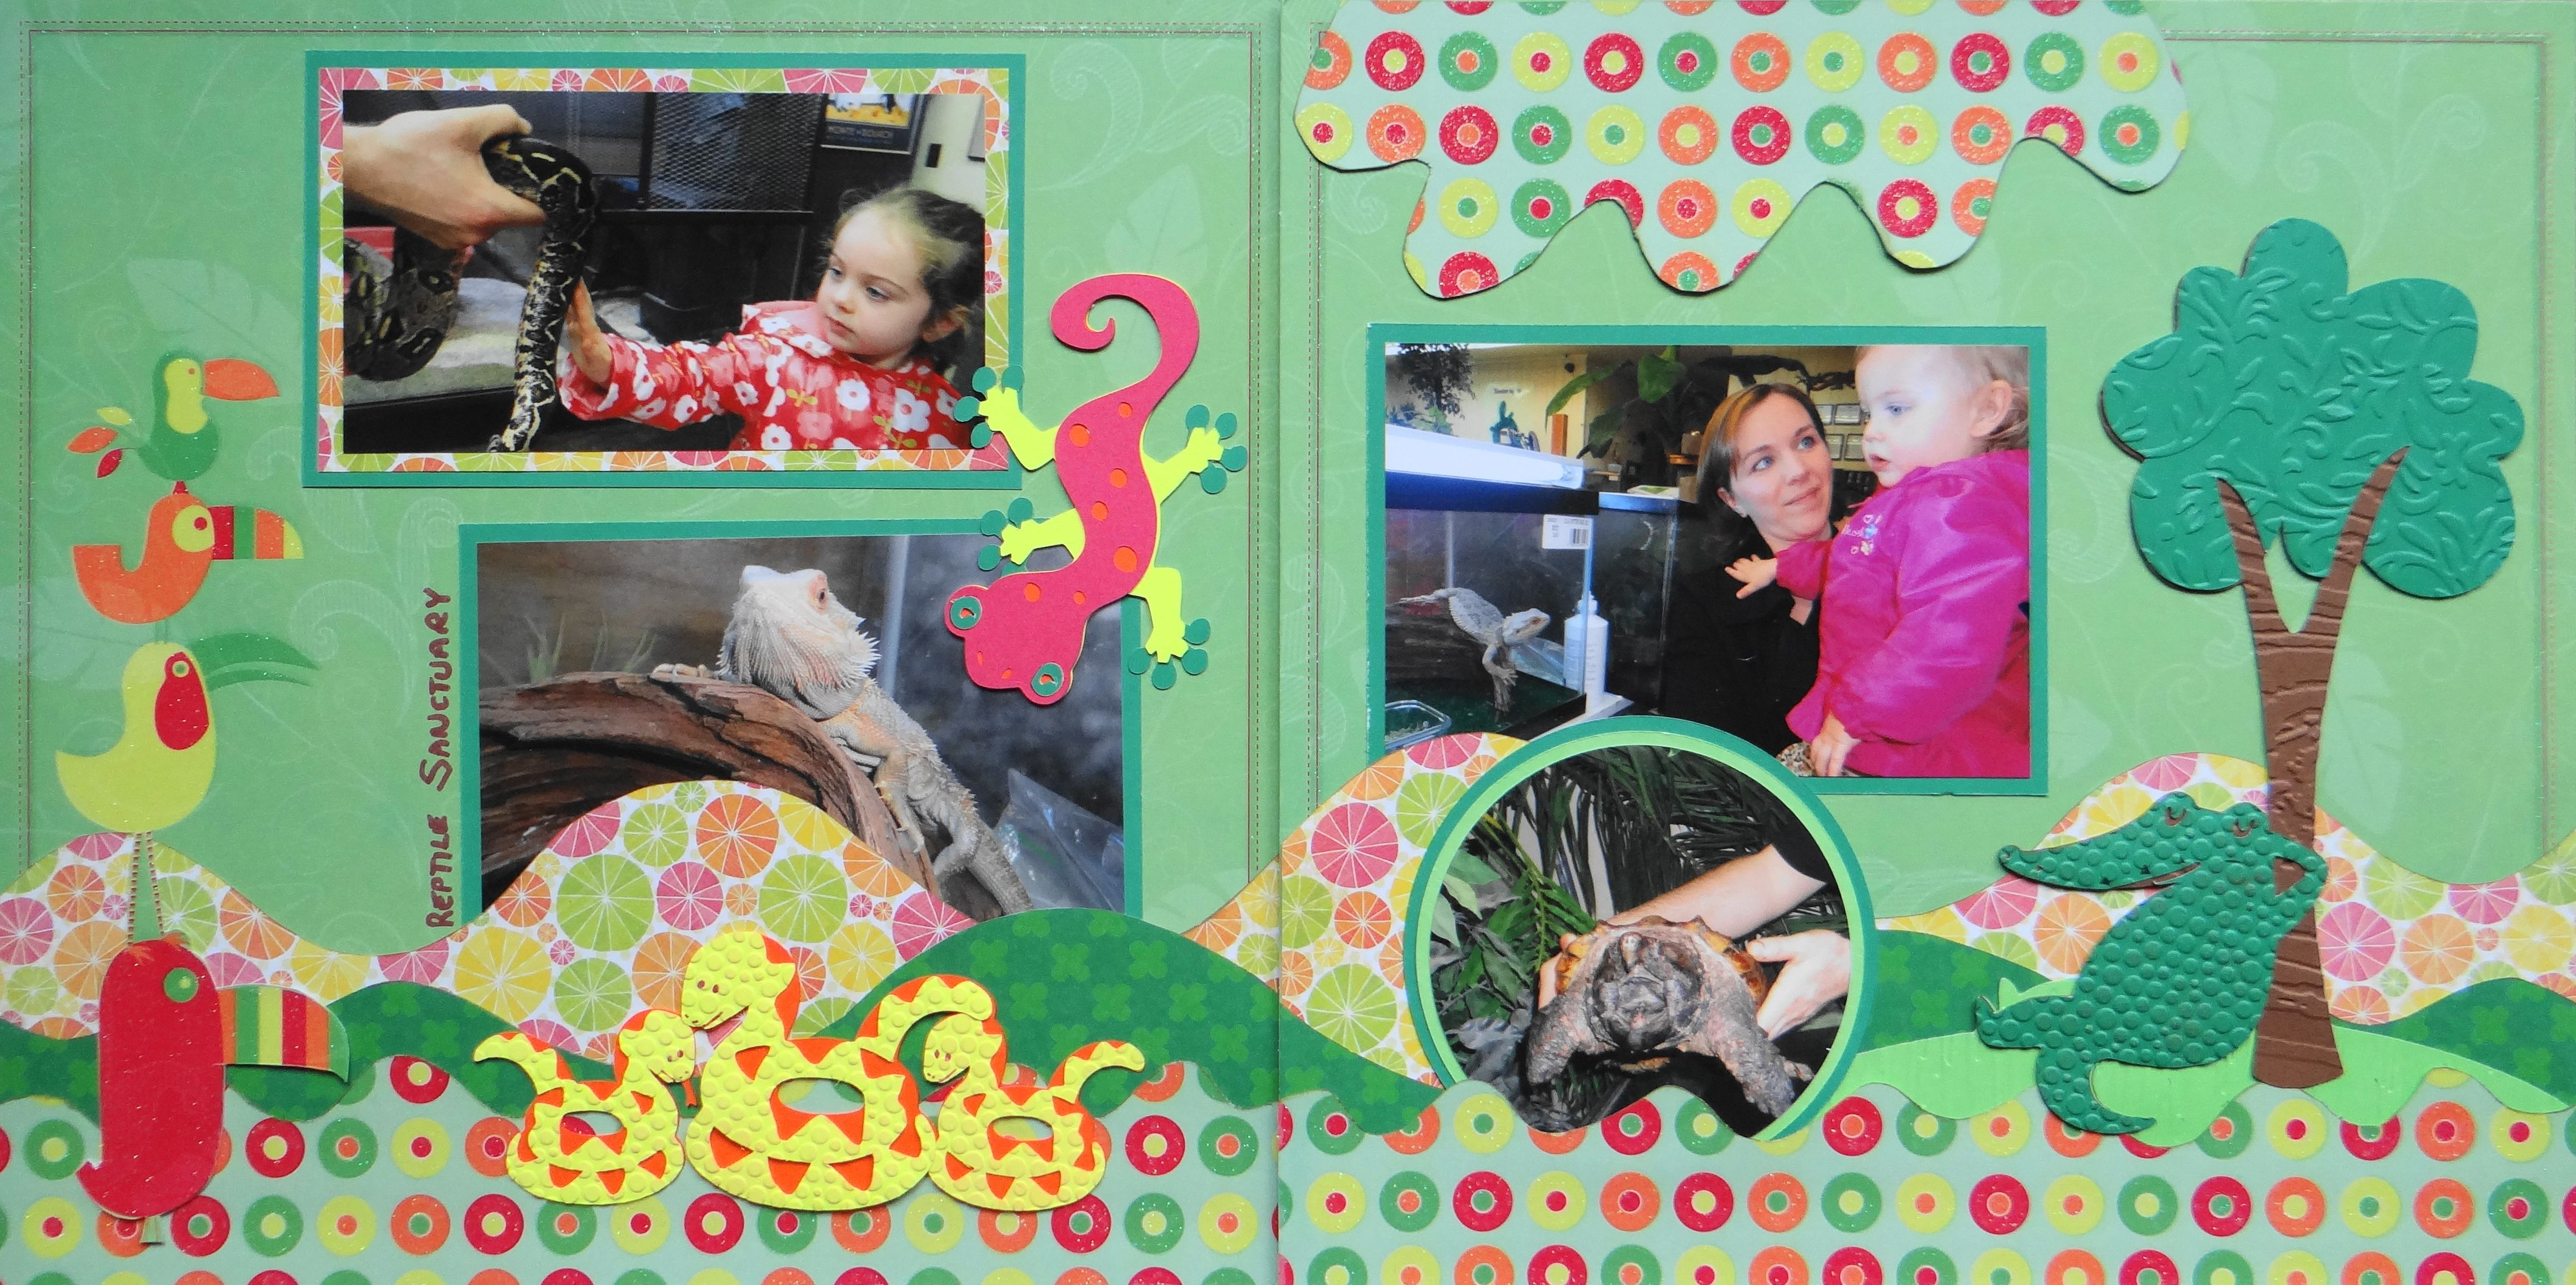 Zoo animal scrapbook ideas - Scrapbook Page Reptile Sanctuary 2 Page Layout With Iguana Turtle Snake From